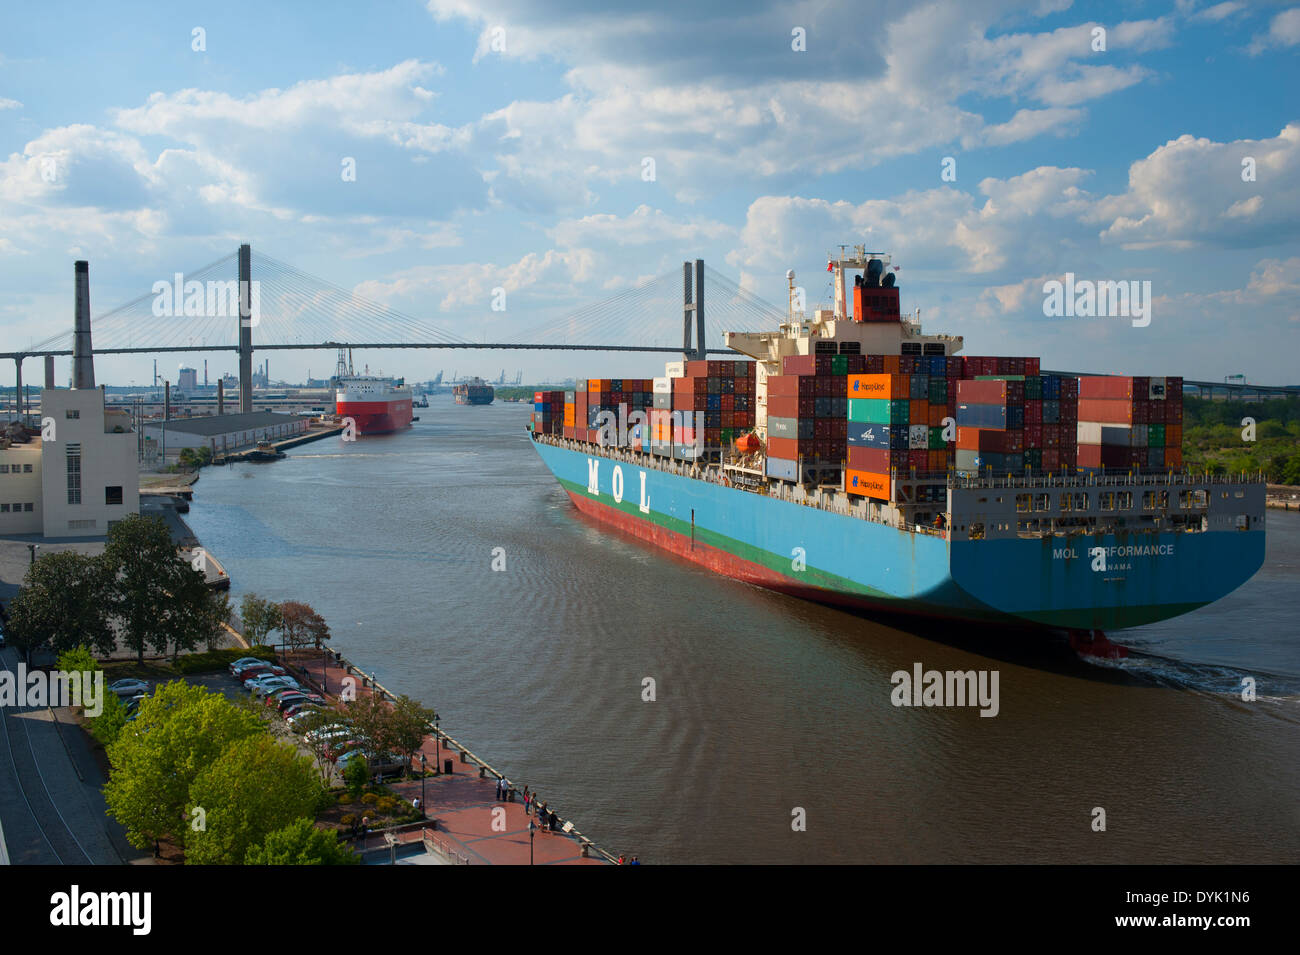 usa-georgia-ga-savannah-container-cargo-ships-ply-the-savannah-river-DYK1N6.jpg